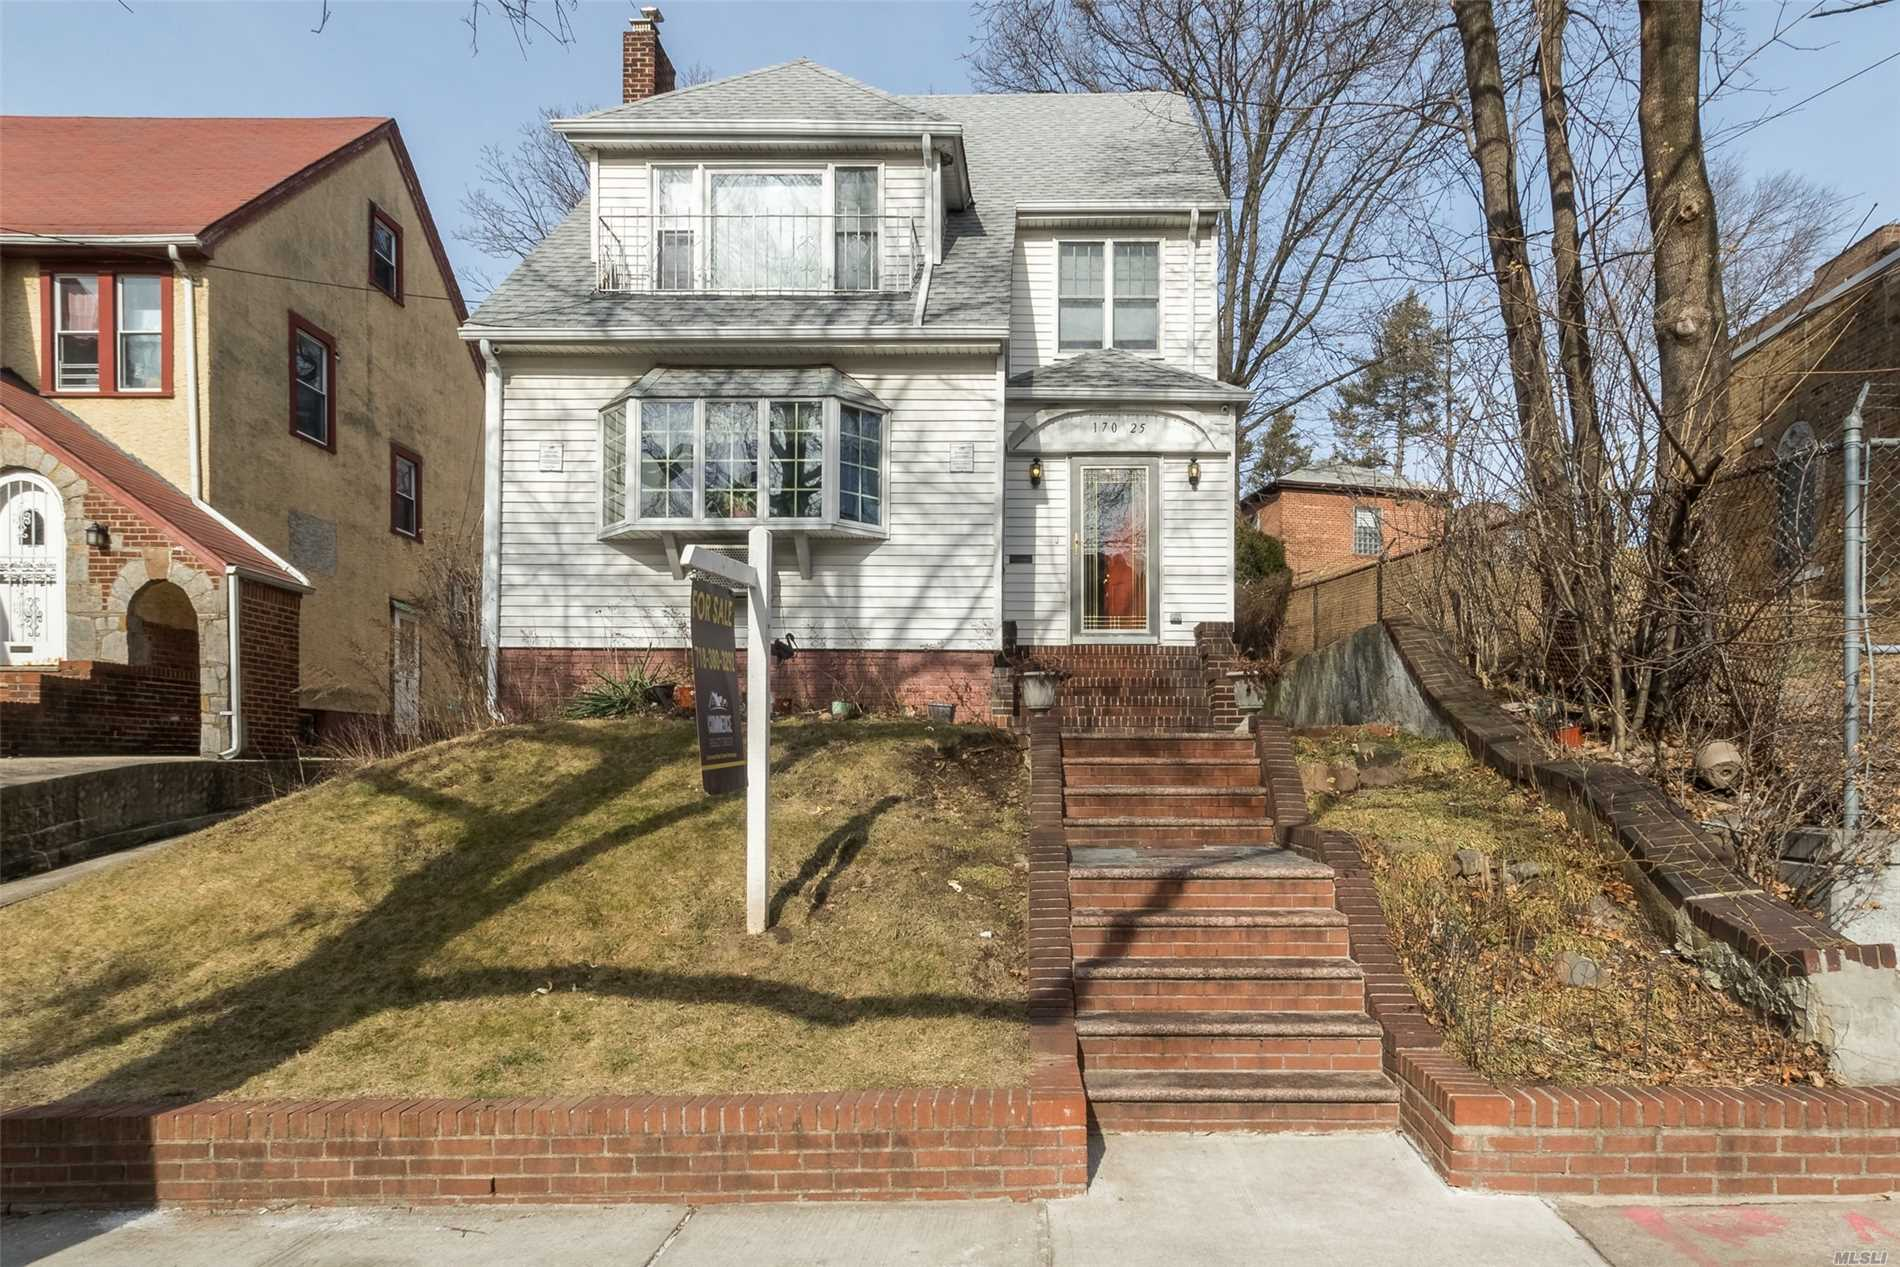 Beautiful House In Jamaica Estates! R5 Zoning 40X120 Lot Size! Perfect For Investors! 3 Stories + Basement! Private Driveway & 3 Car Garage! Owner Ready To Make A Deal! Close To F Train & Sju!